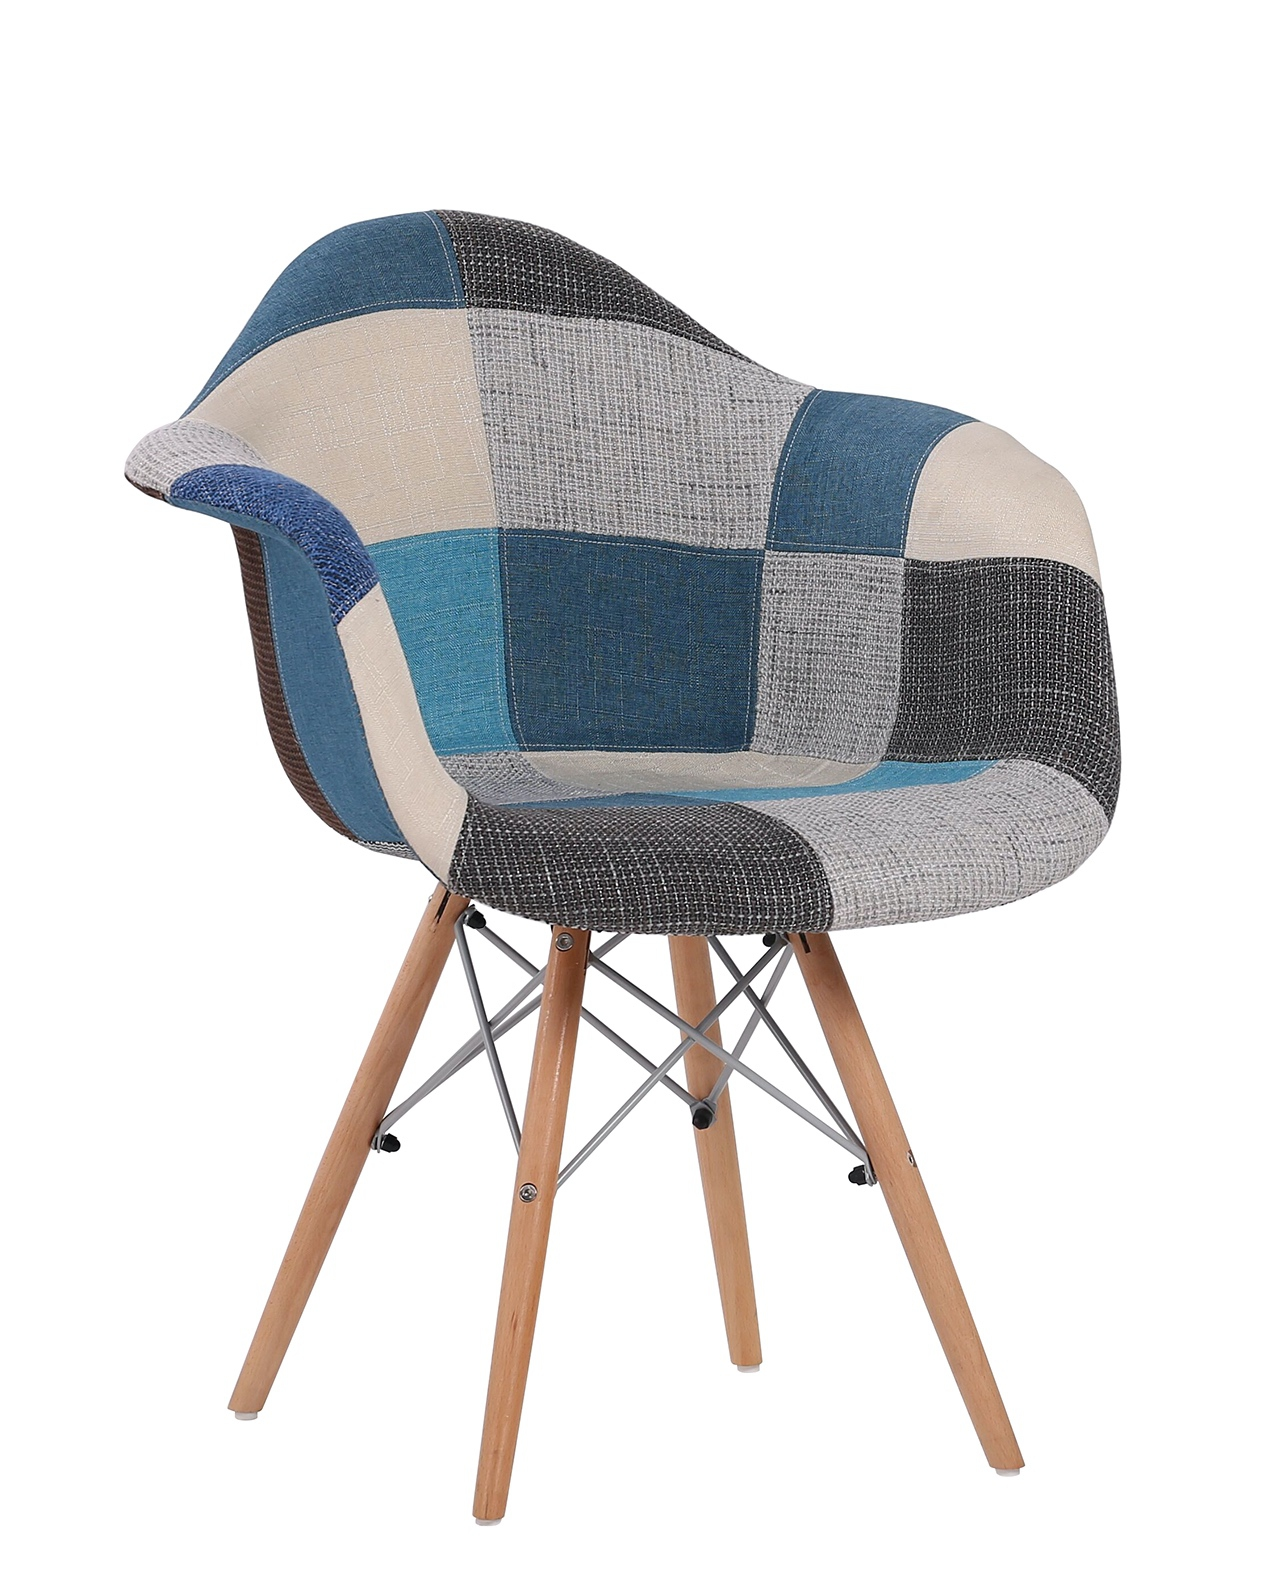 Chaise Design Patchwork Nador Lot De 2 Fauteuils Design Daw Rembourré